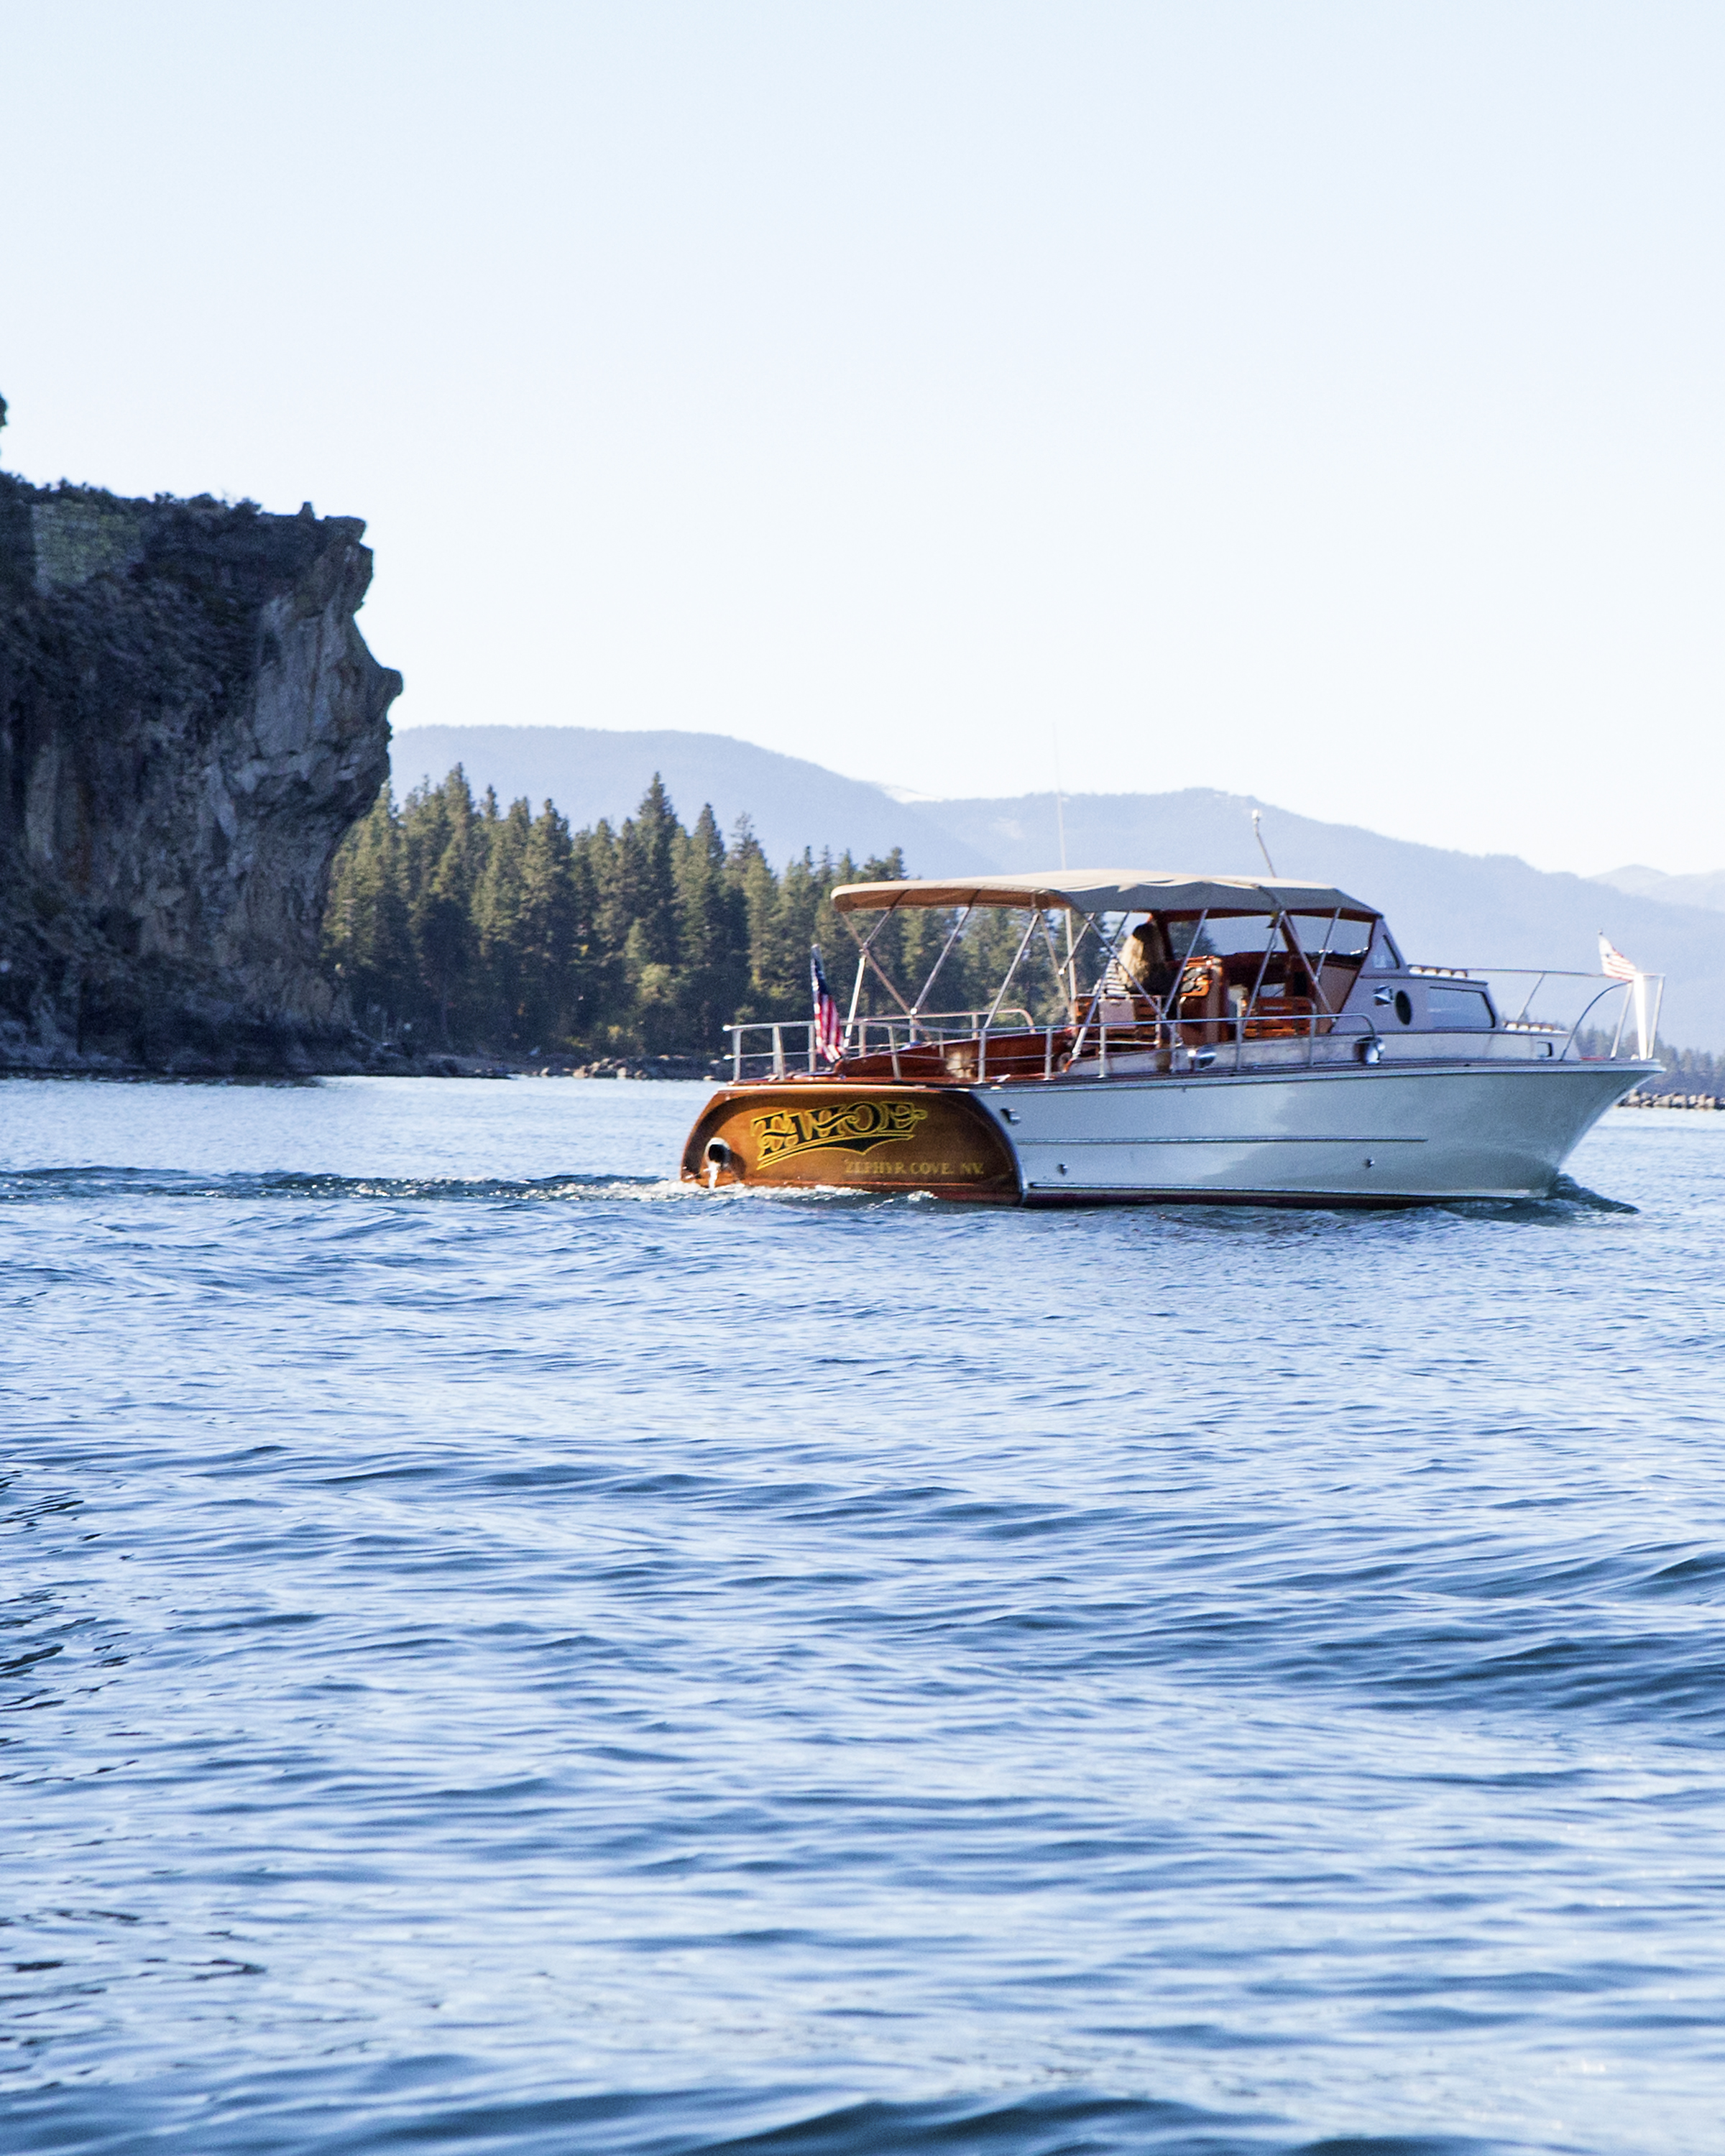 """The Tahoe passing the """"Lady of the Lake"""" as she looks out on Lake Tahoe from Cave Rock."""